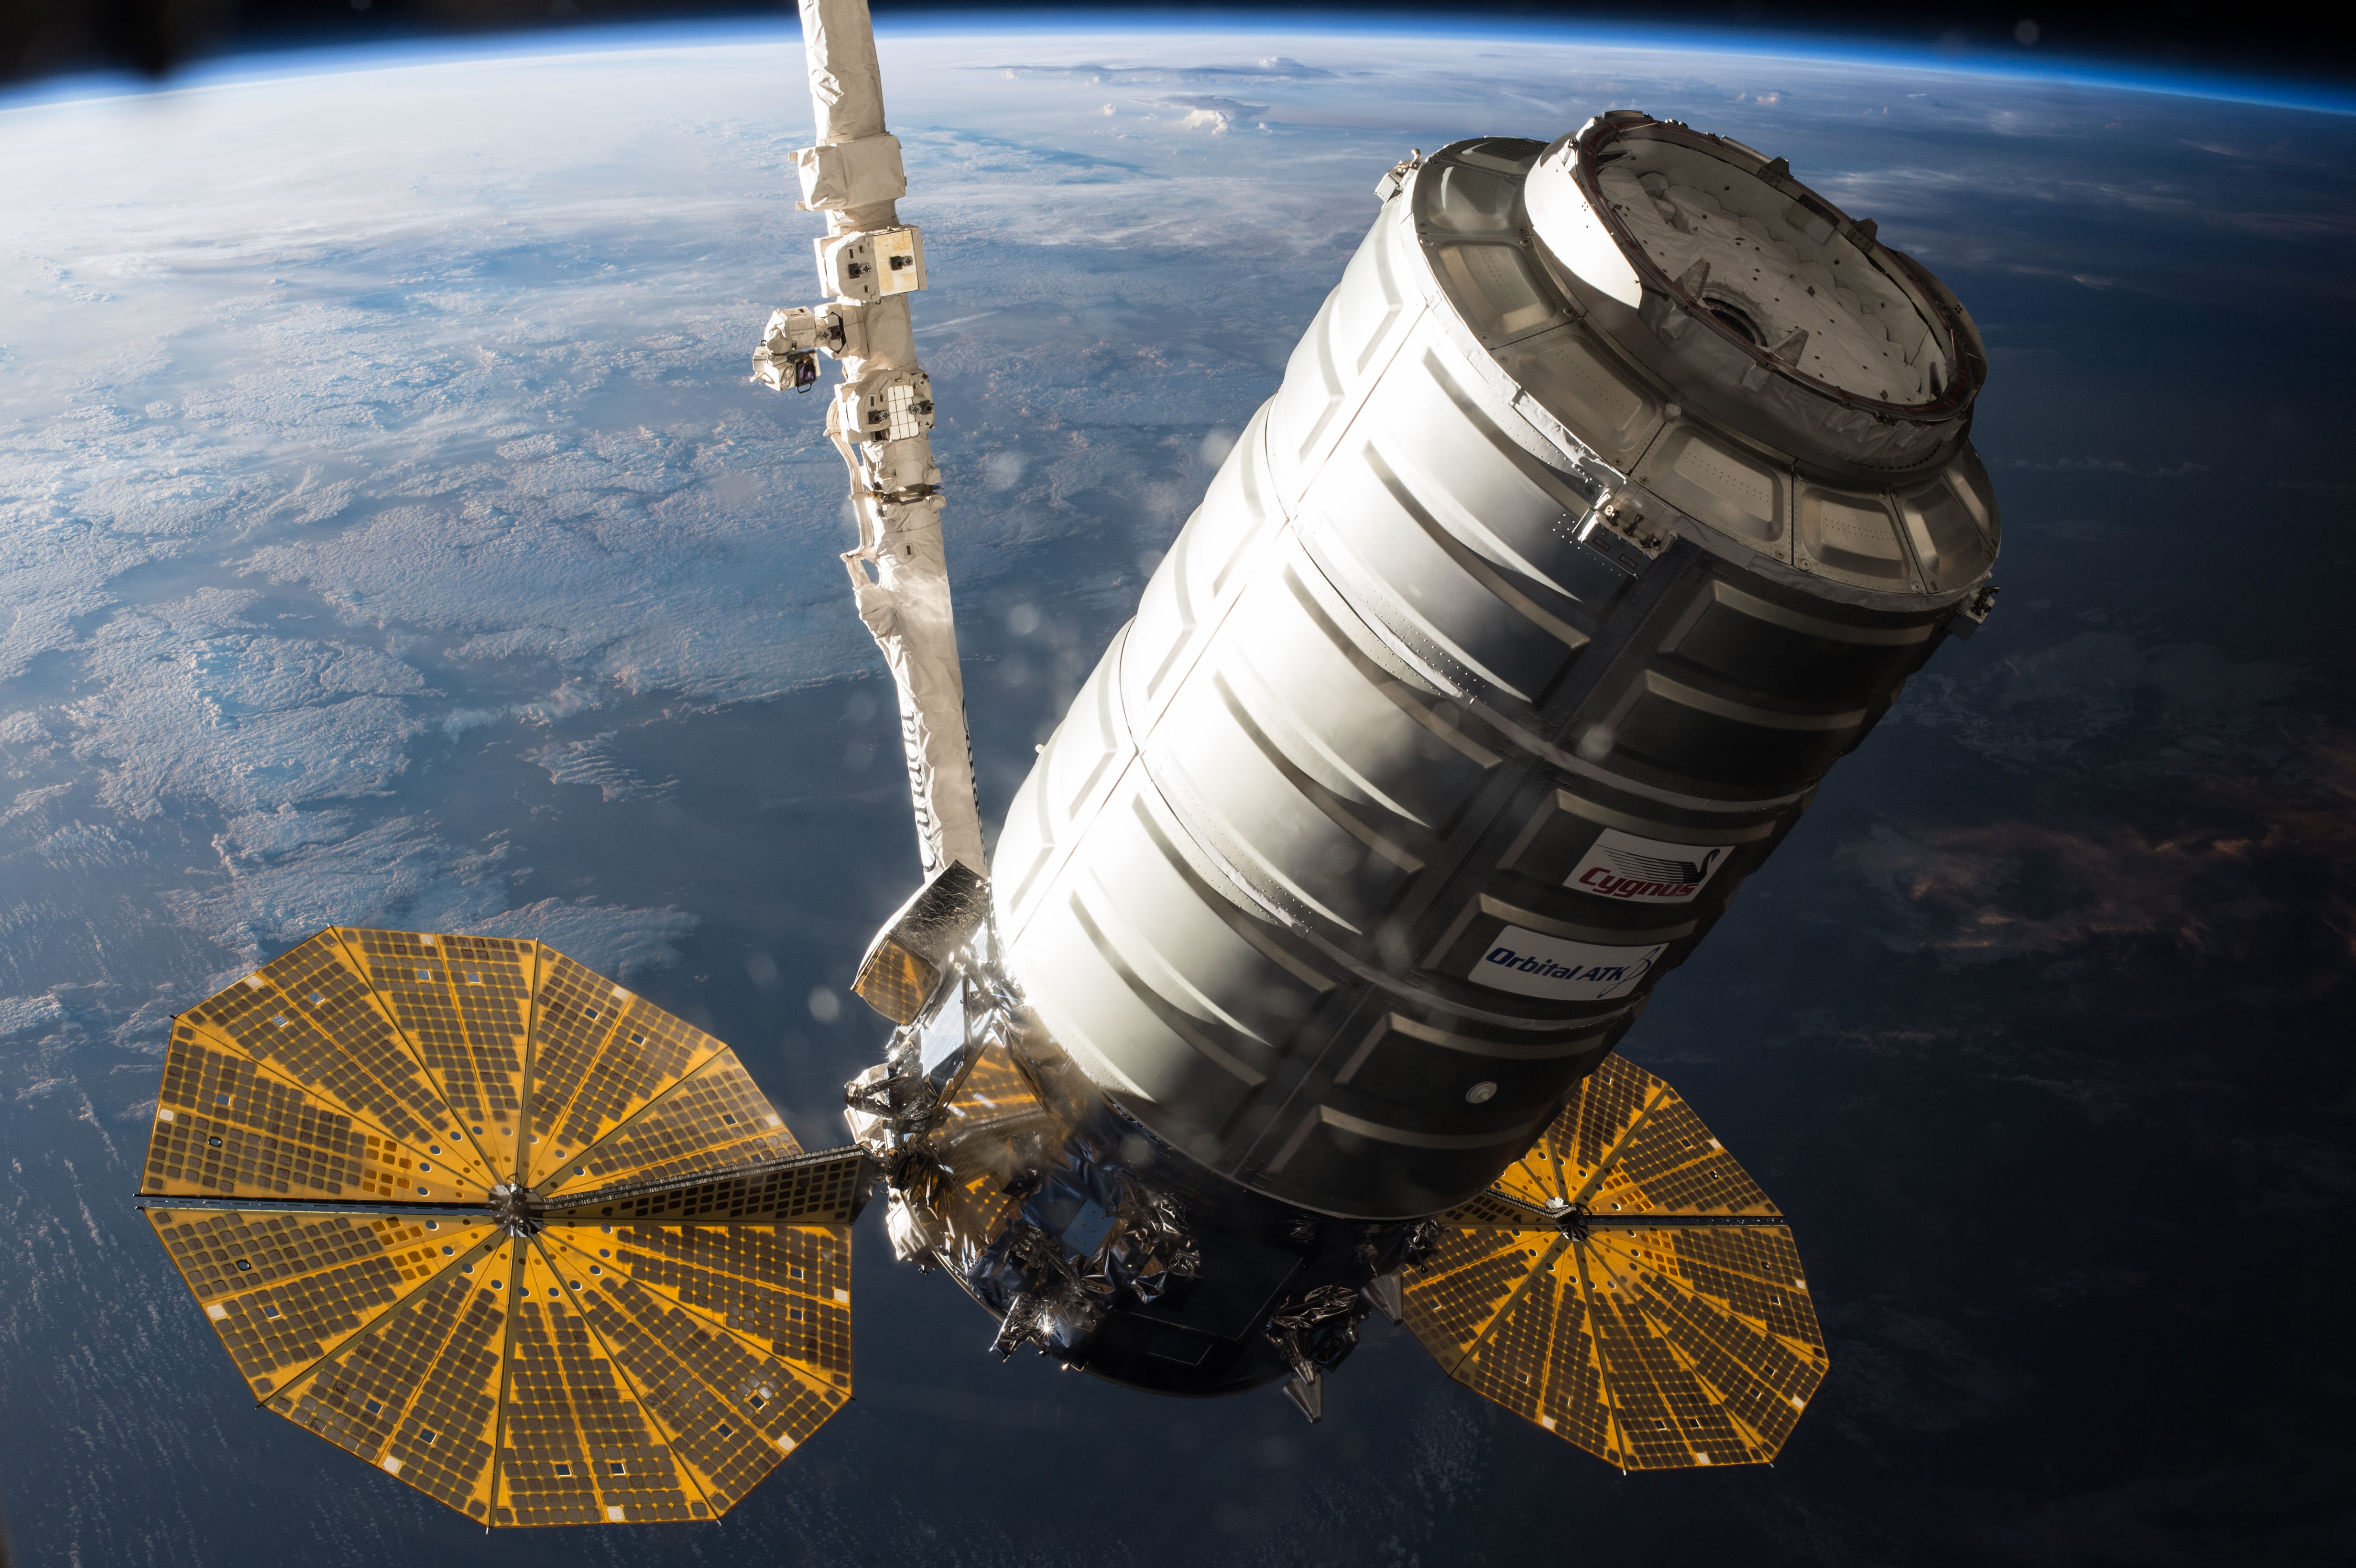 A payload in space.